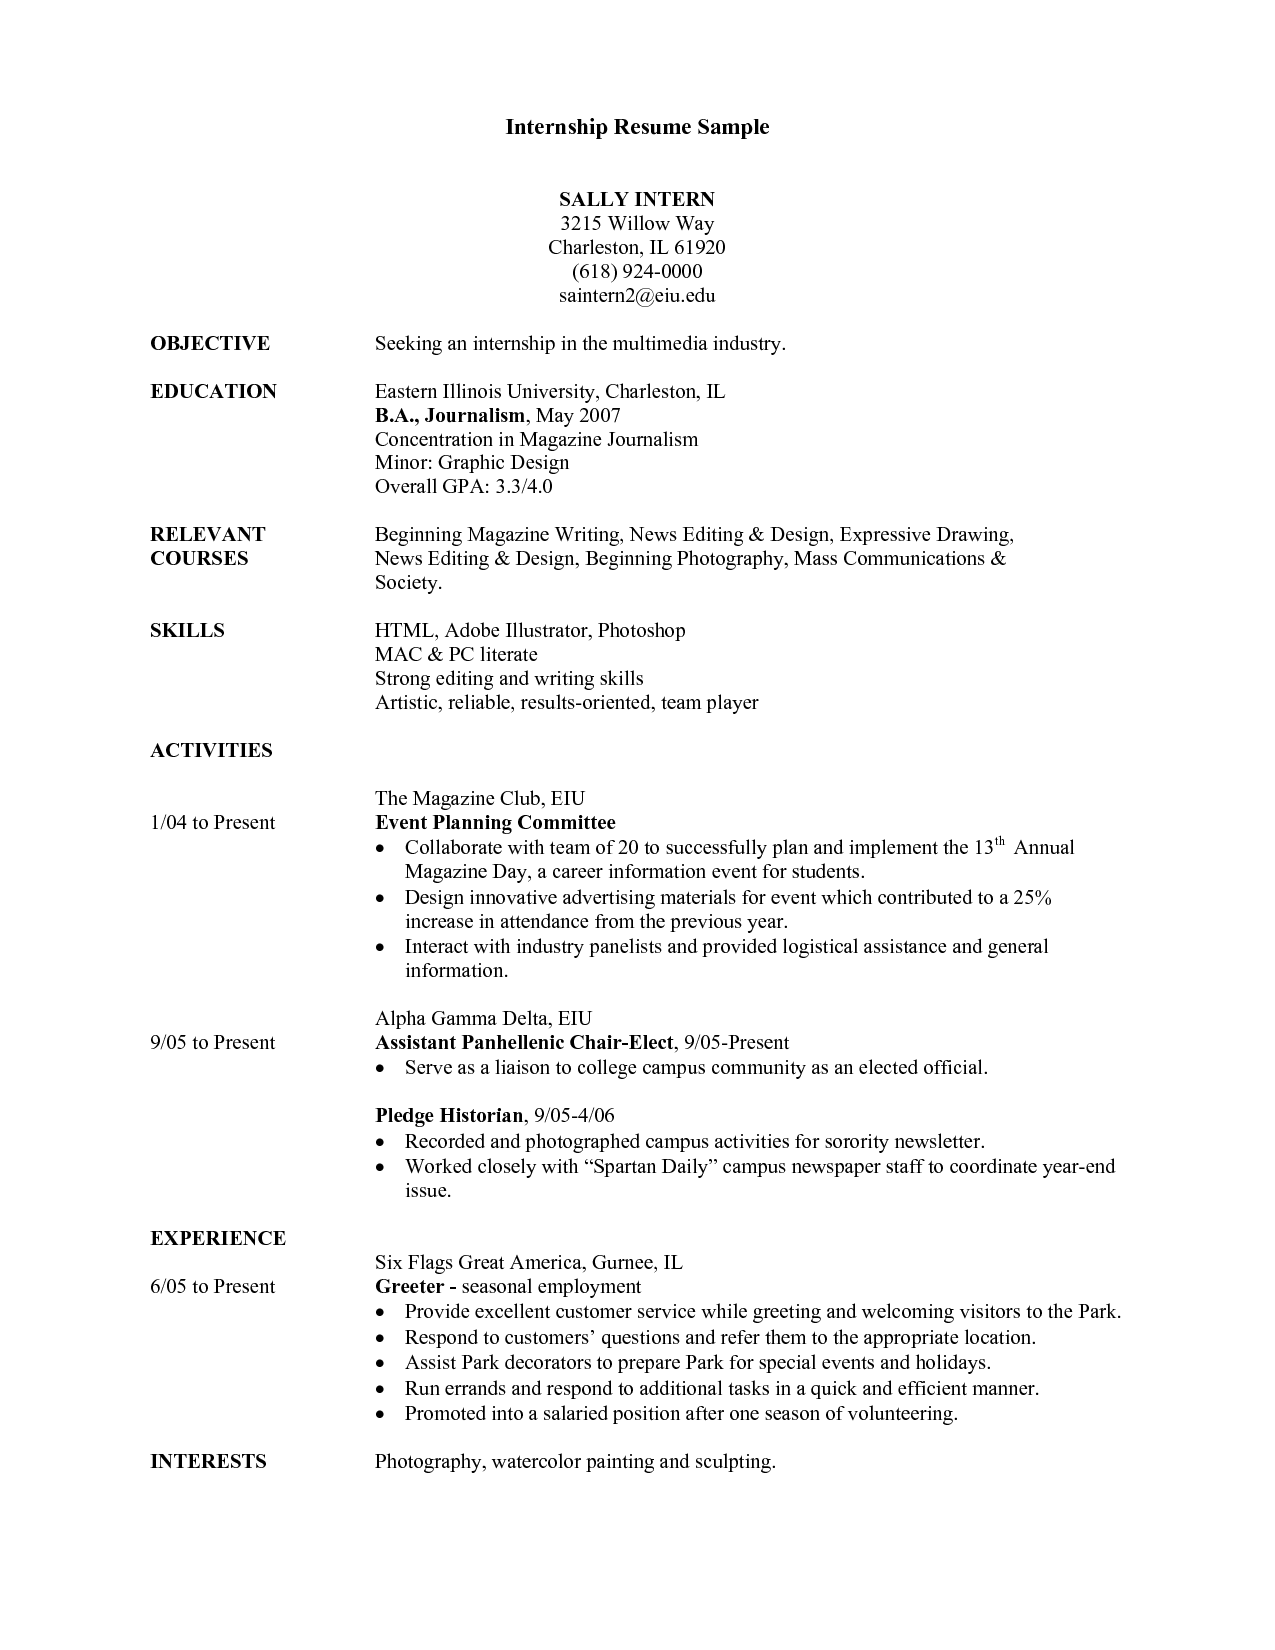 College Student Resume For Internship Task List Templates